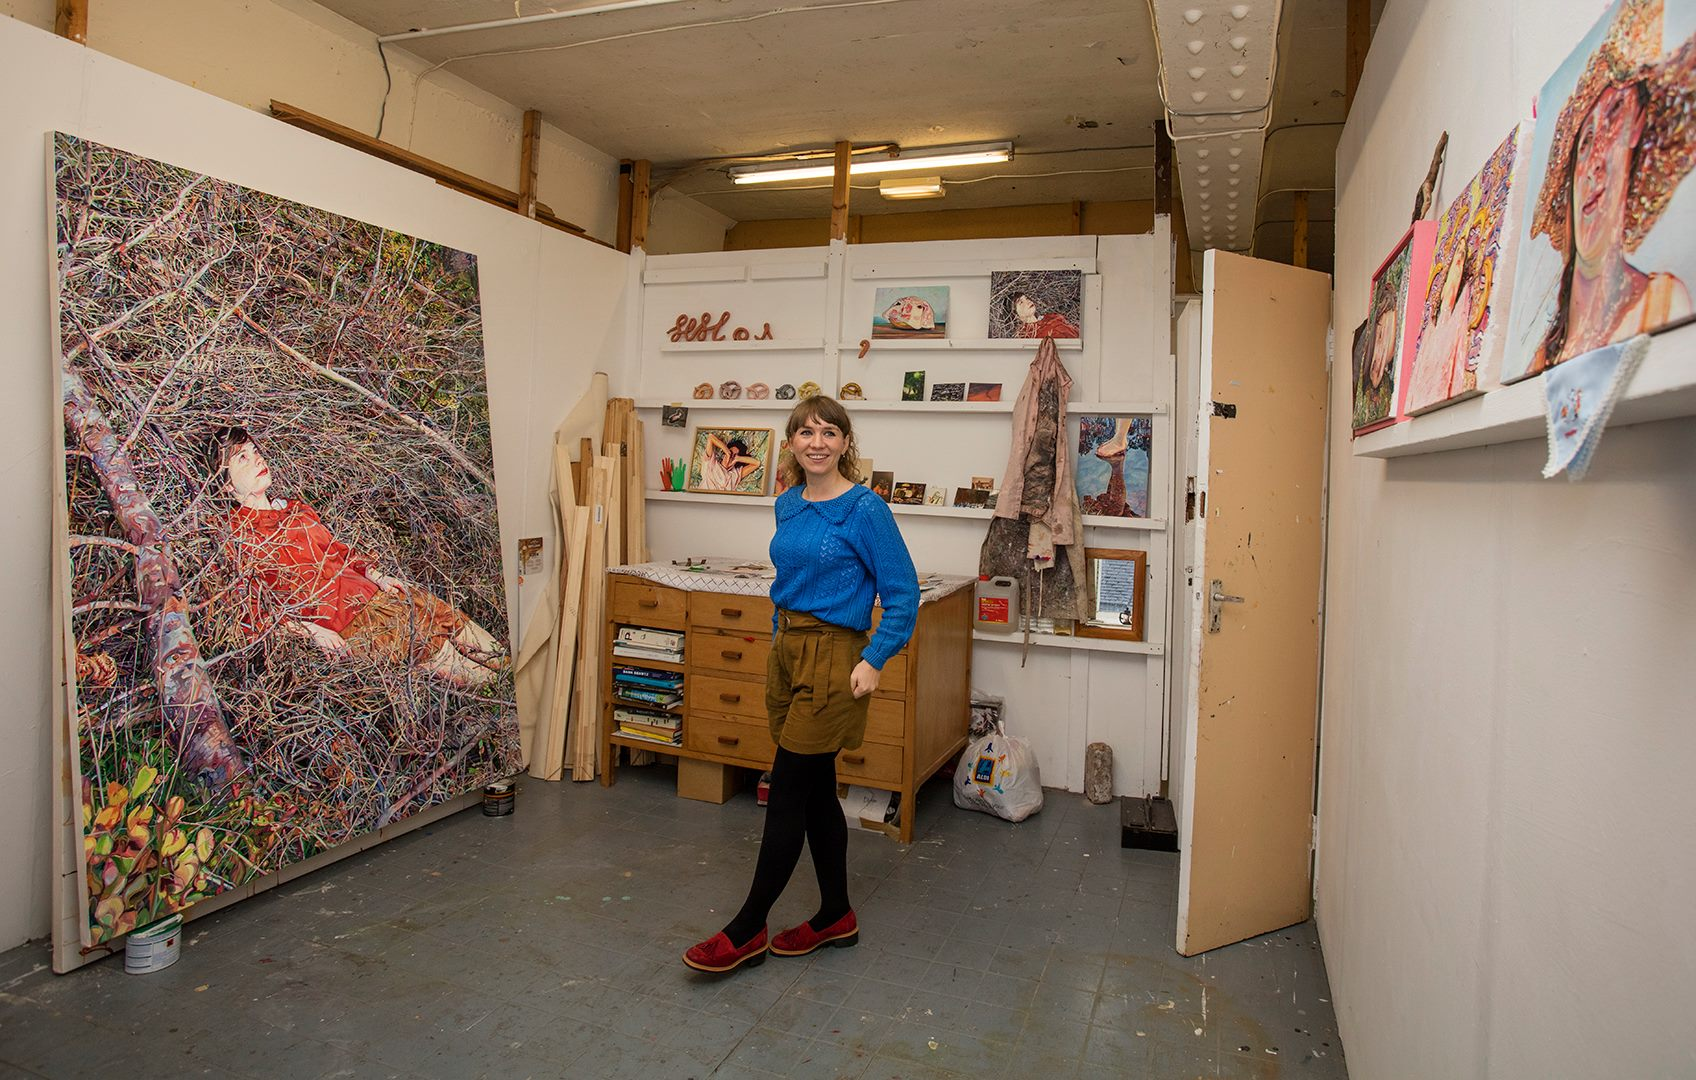 Ruth Murray in her Manchester studio. Photo credit: Lāsma Poiša